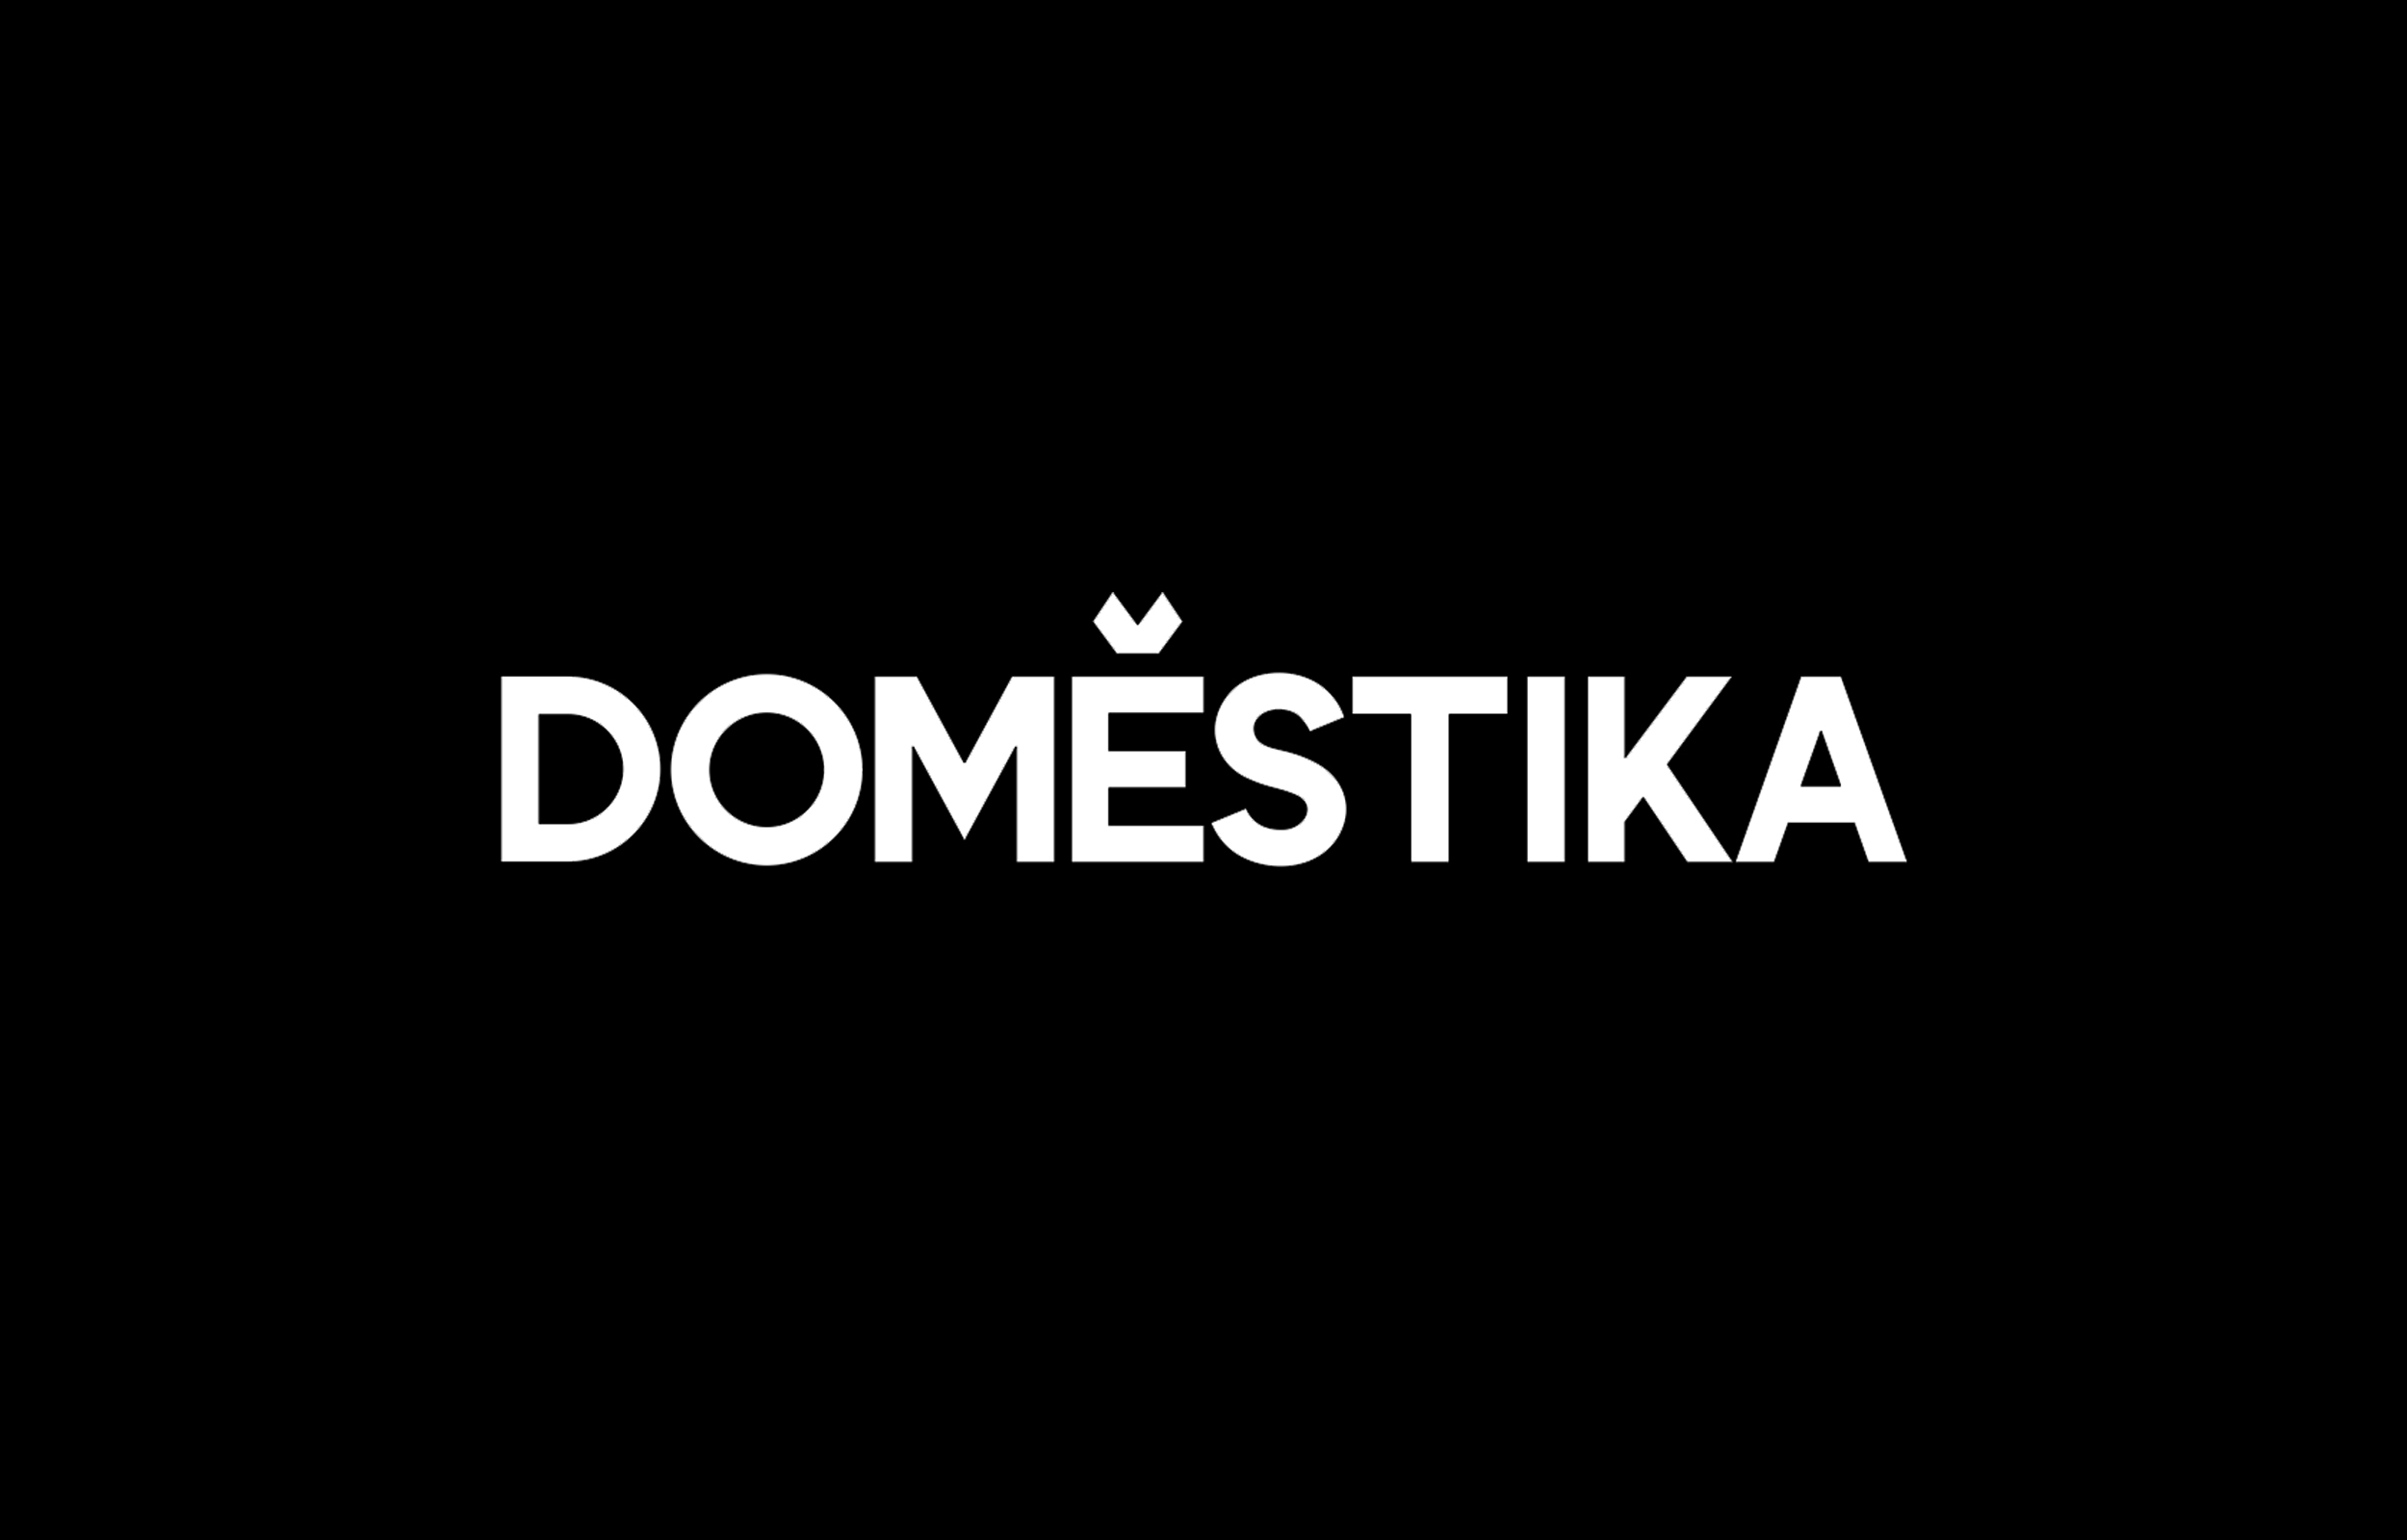 Blondy on Domestika